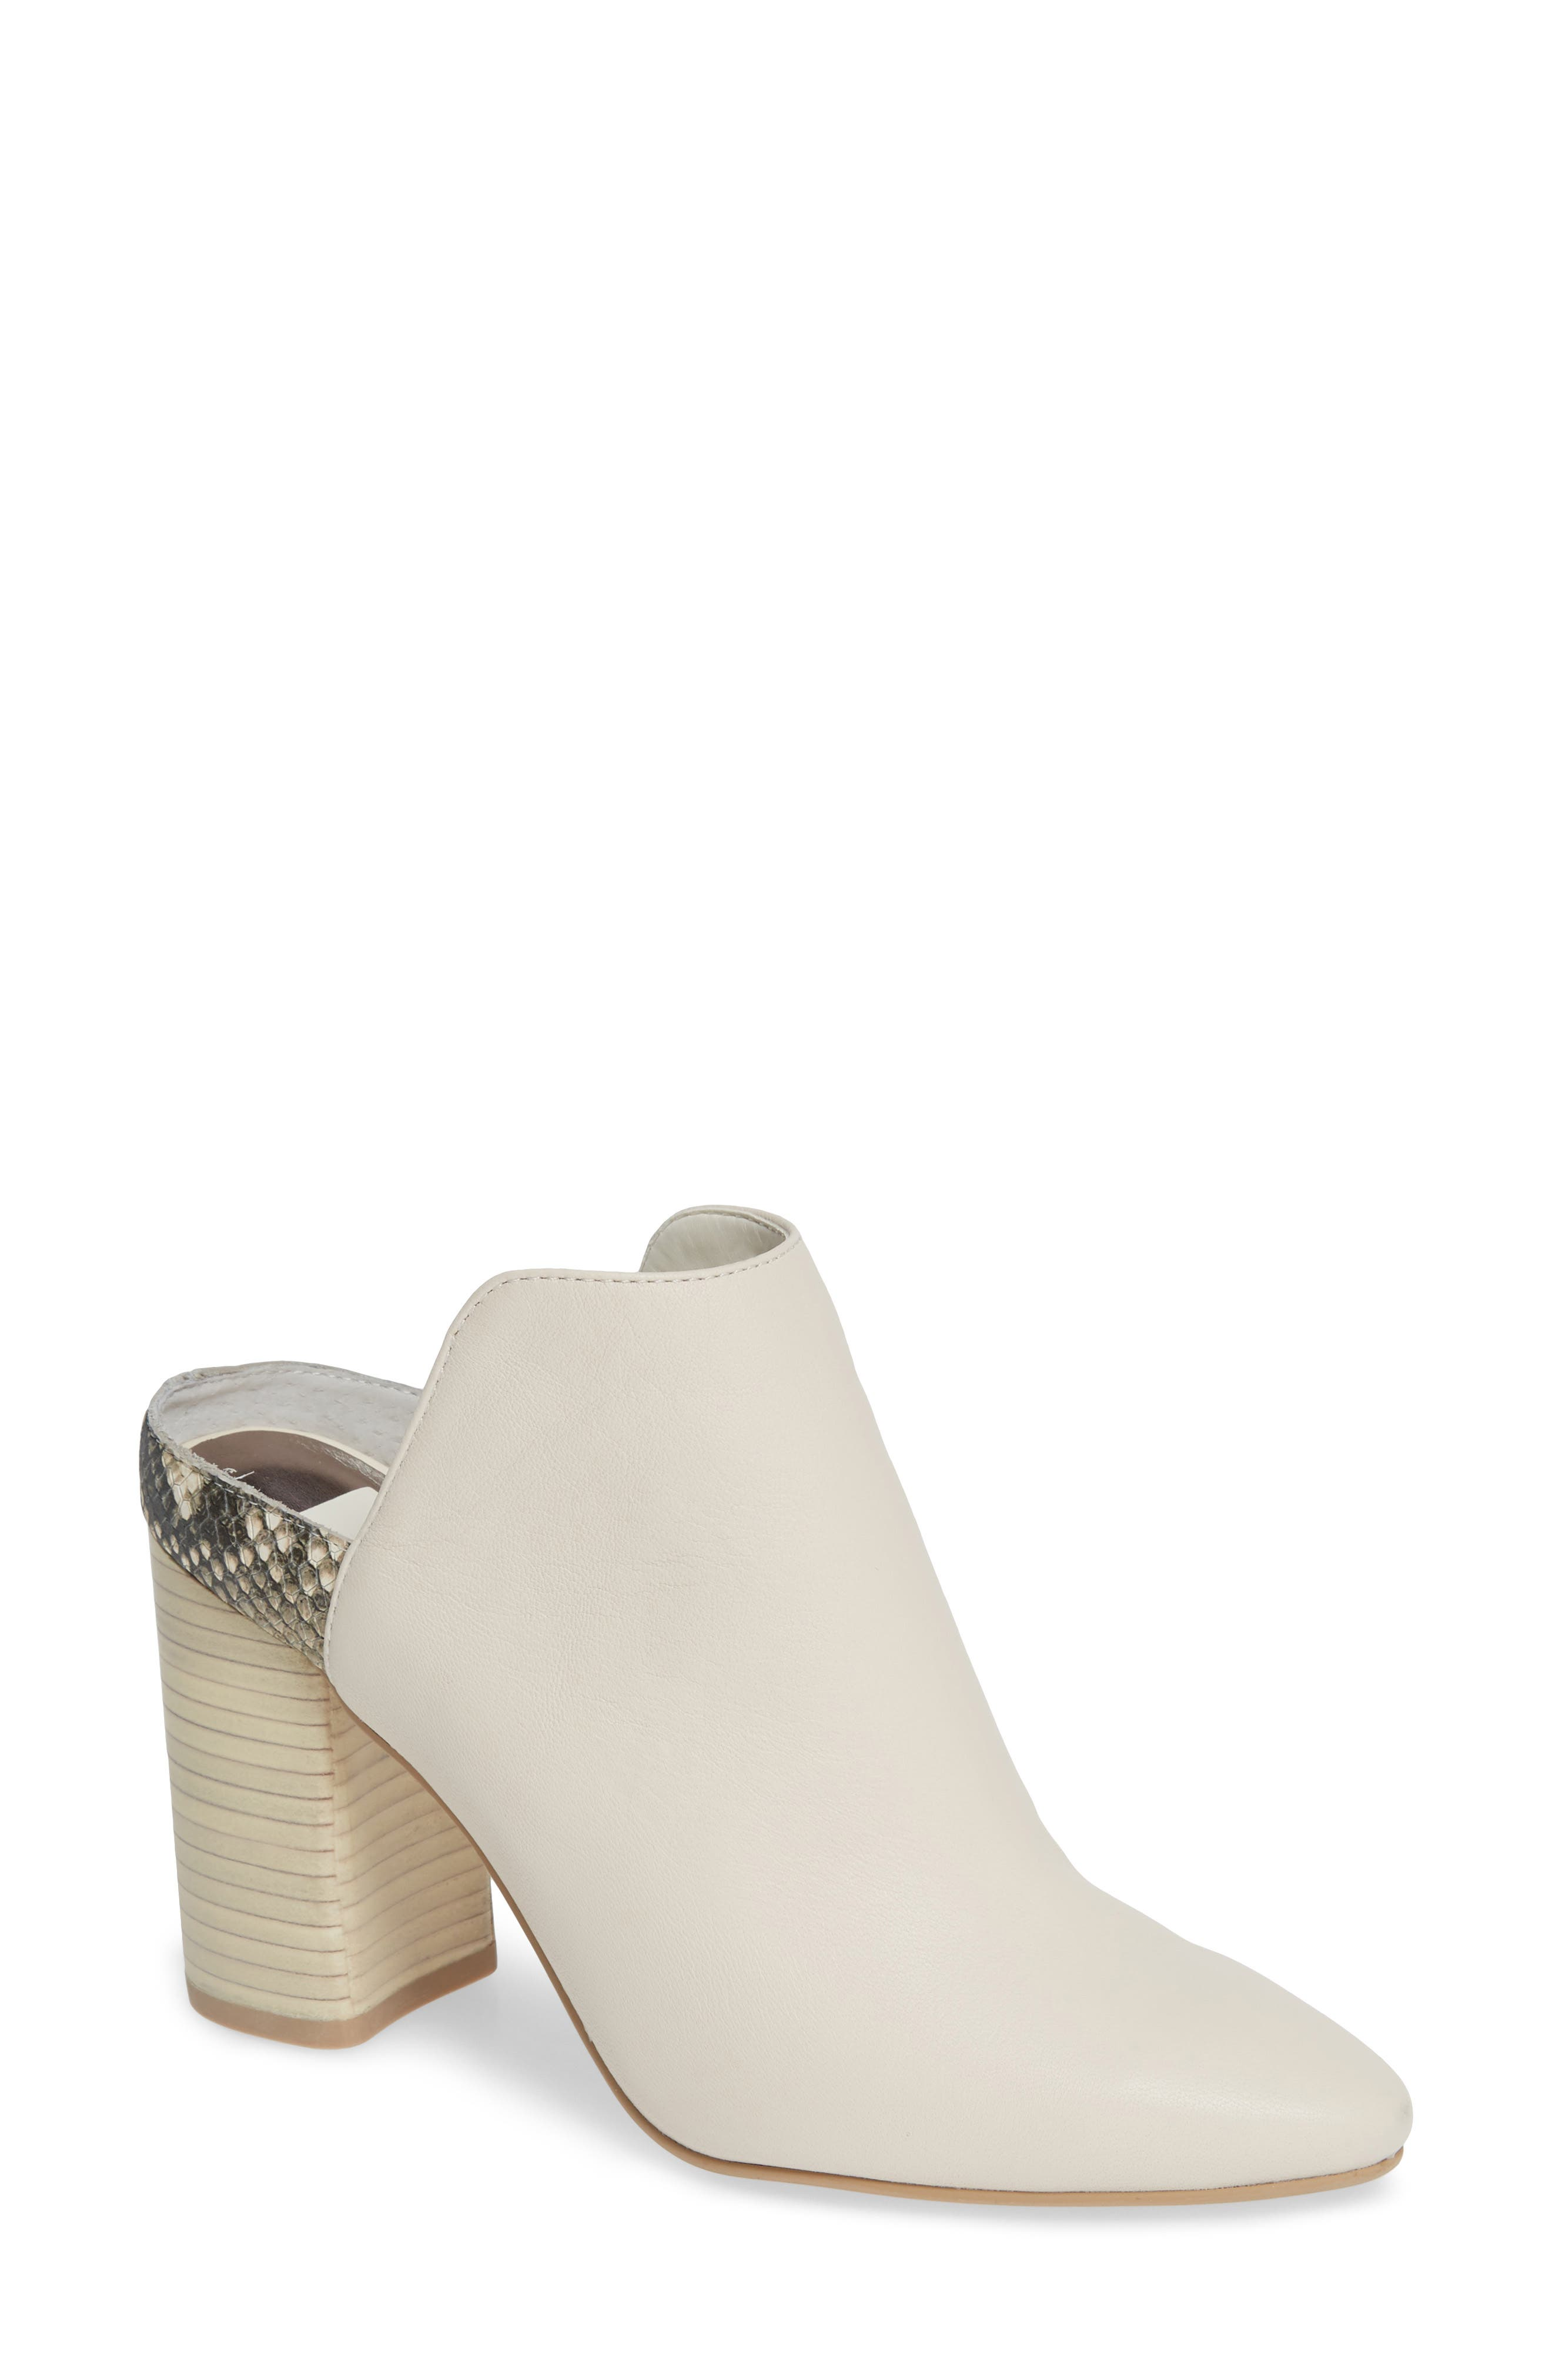 Renly Mule,                         Main,                         color, IVORY